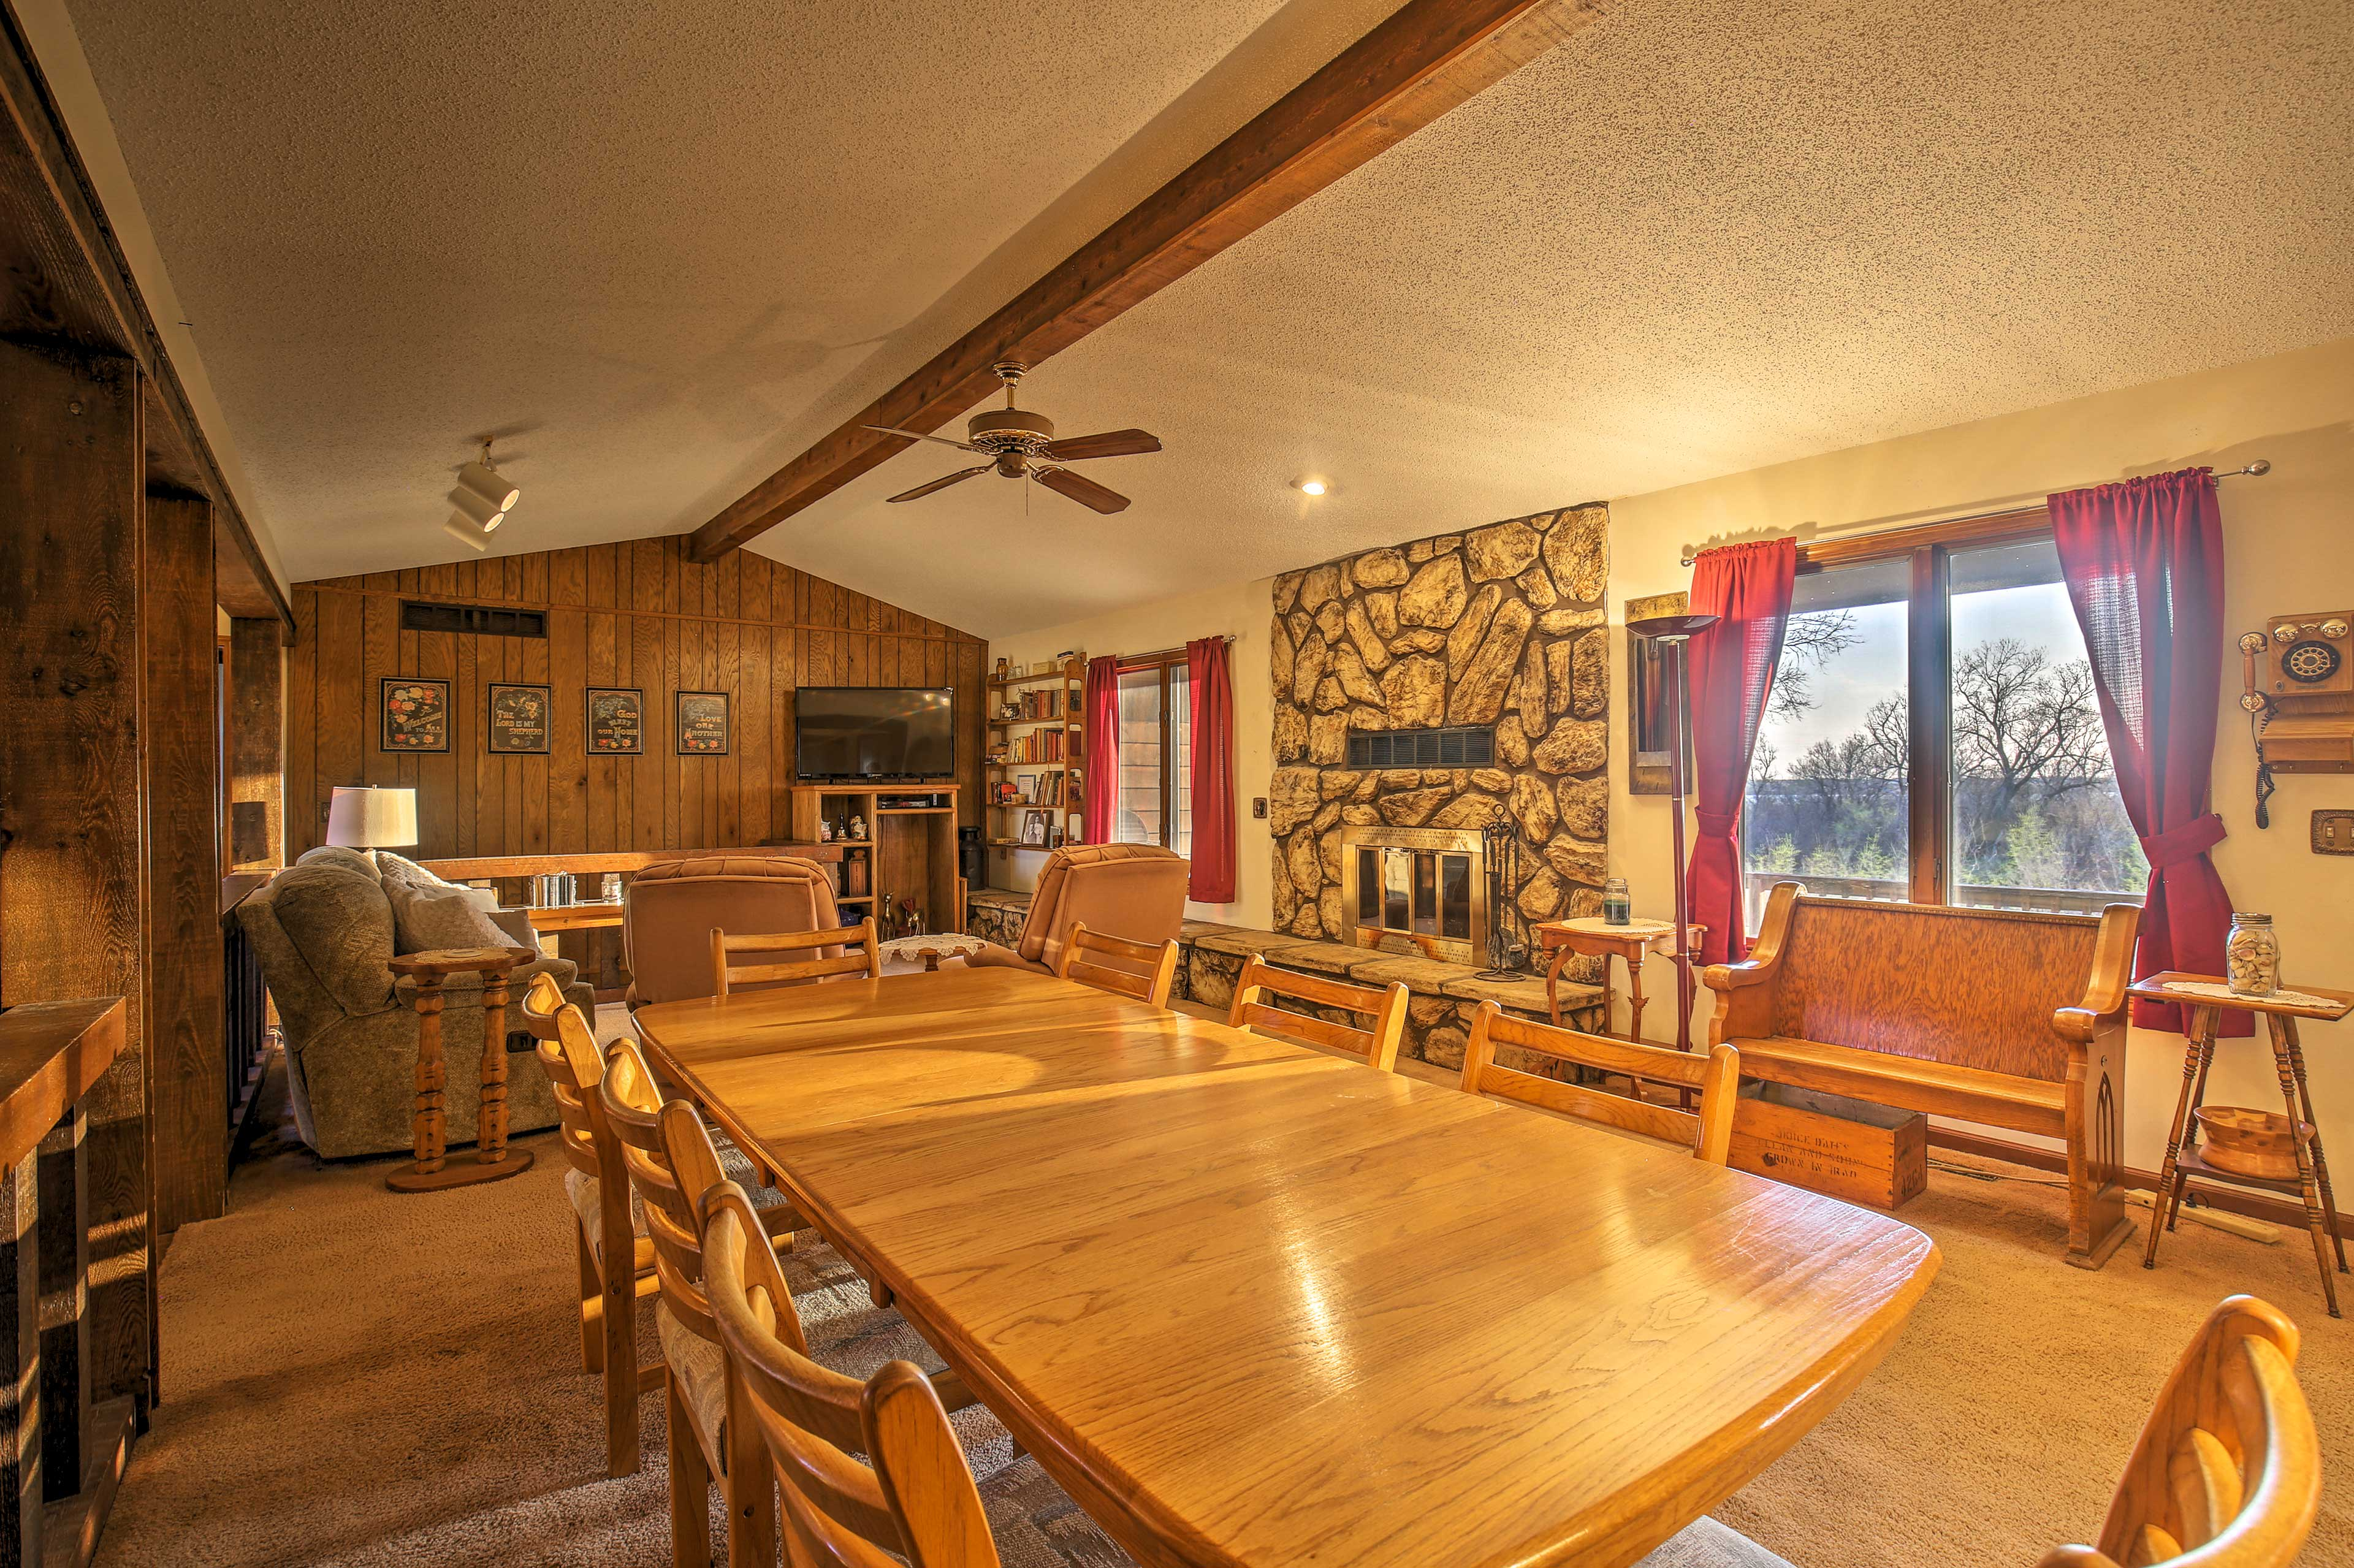 Your group can savor home-cooked meals at the 8-person dining table.